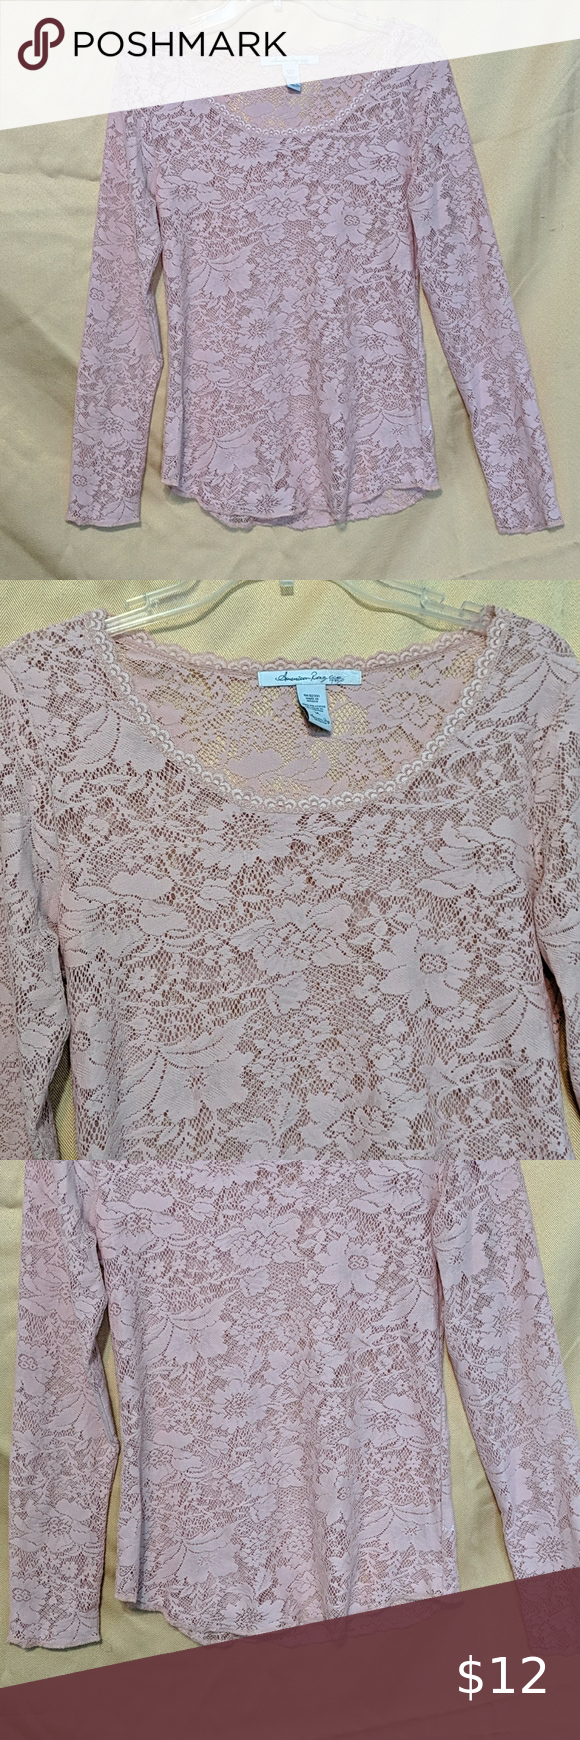 Long sleeve lace top Long sleeve lace top Dusty Ro